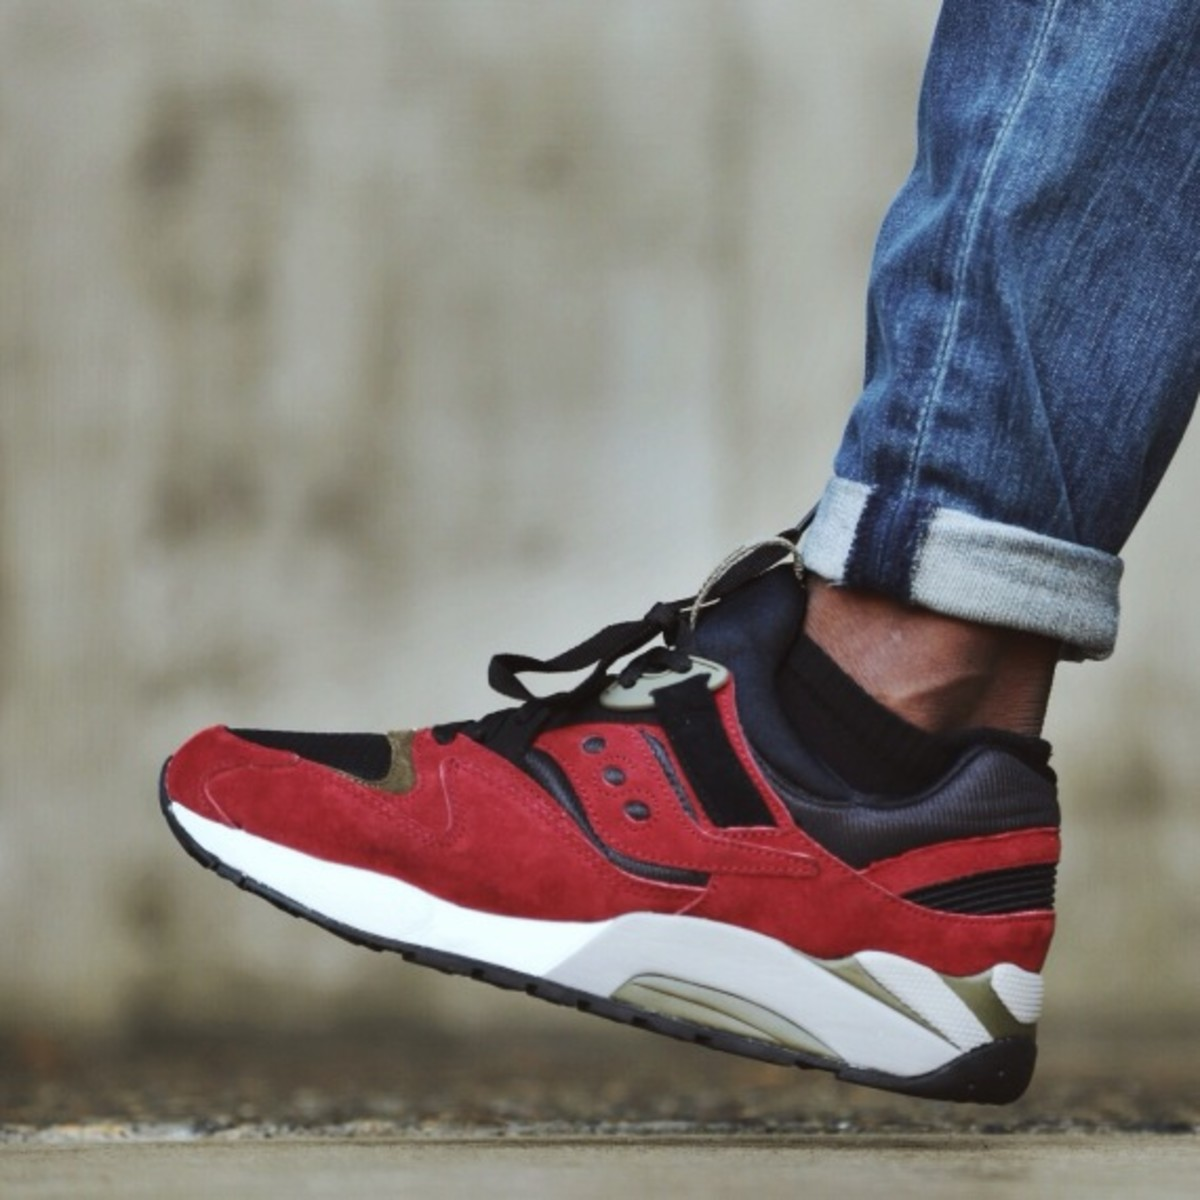 saucony-grid-9000-spice-pack-05